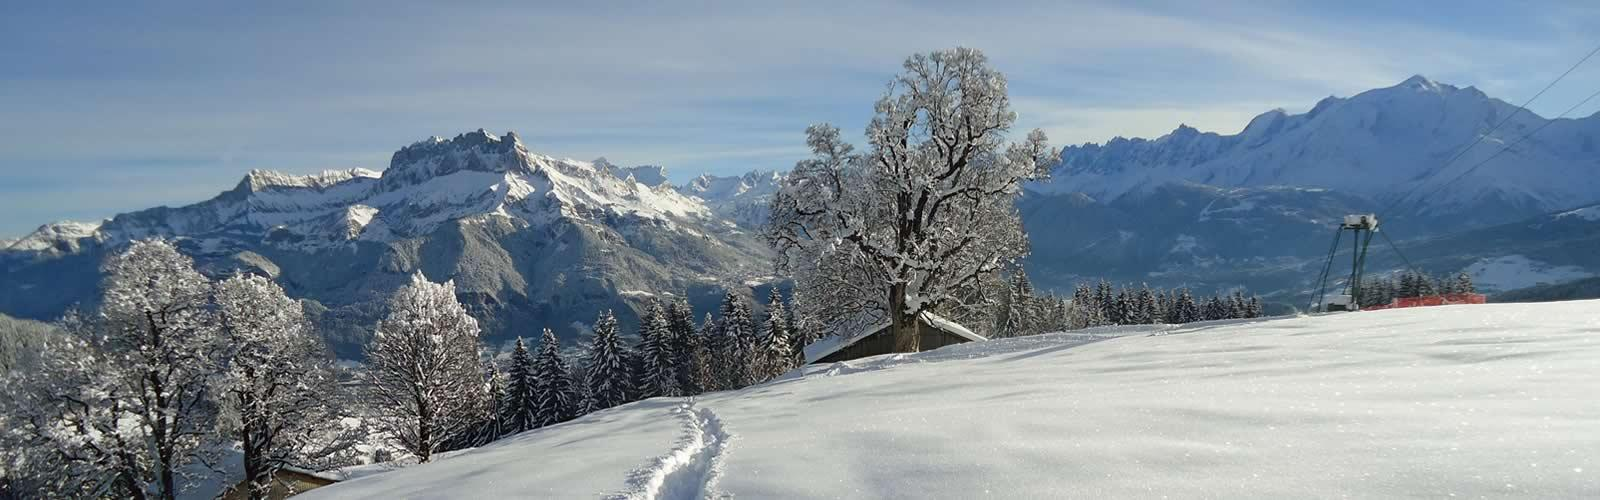 Peak Transfer recommend a Winter Ski Getaway to Cordon